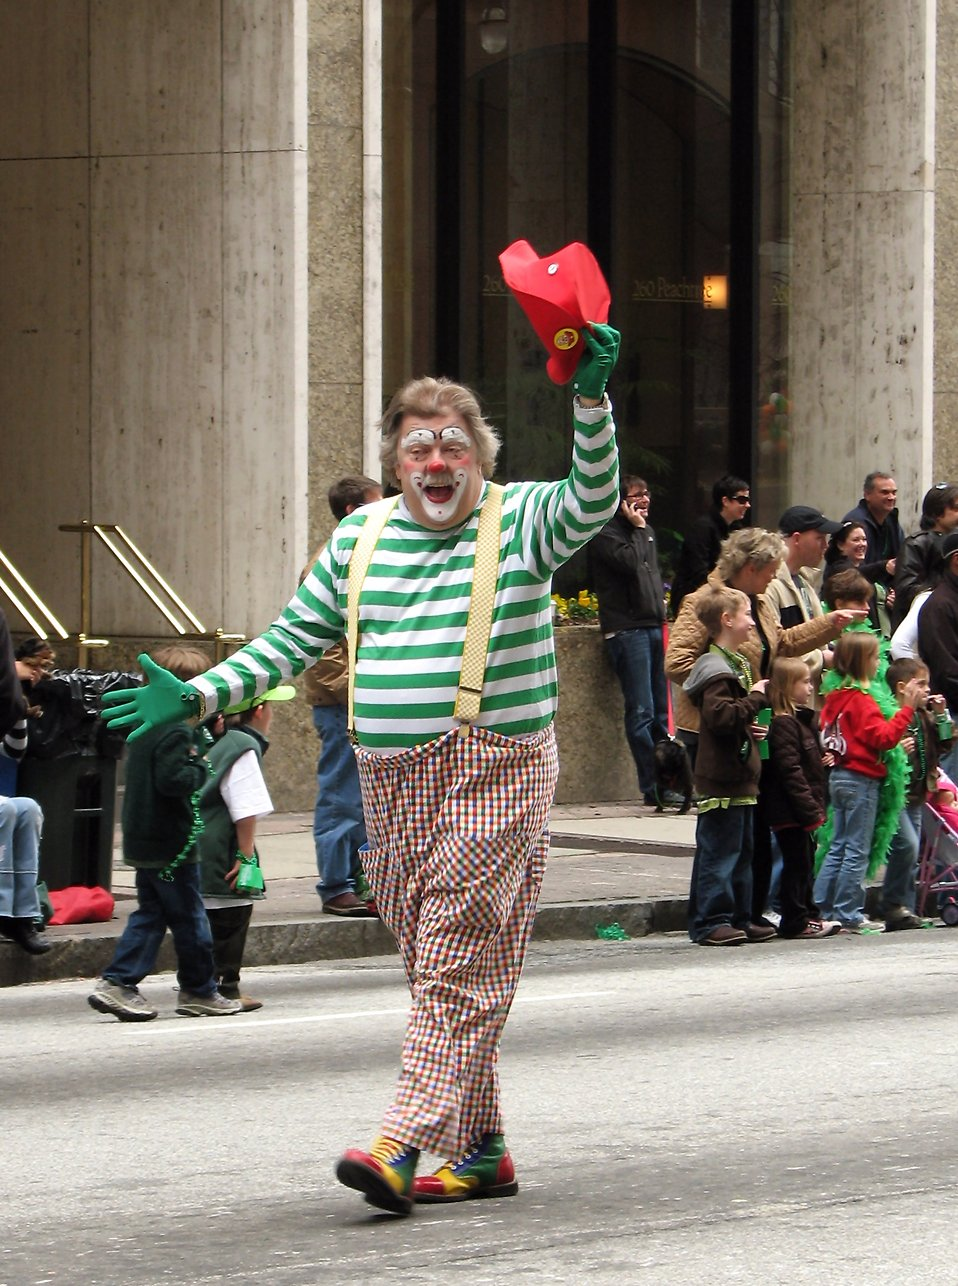 A clown in the 2010 Saint Patricks Day Parade in Atlanta, Georgia : Free Stock Photo